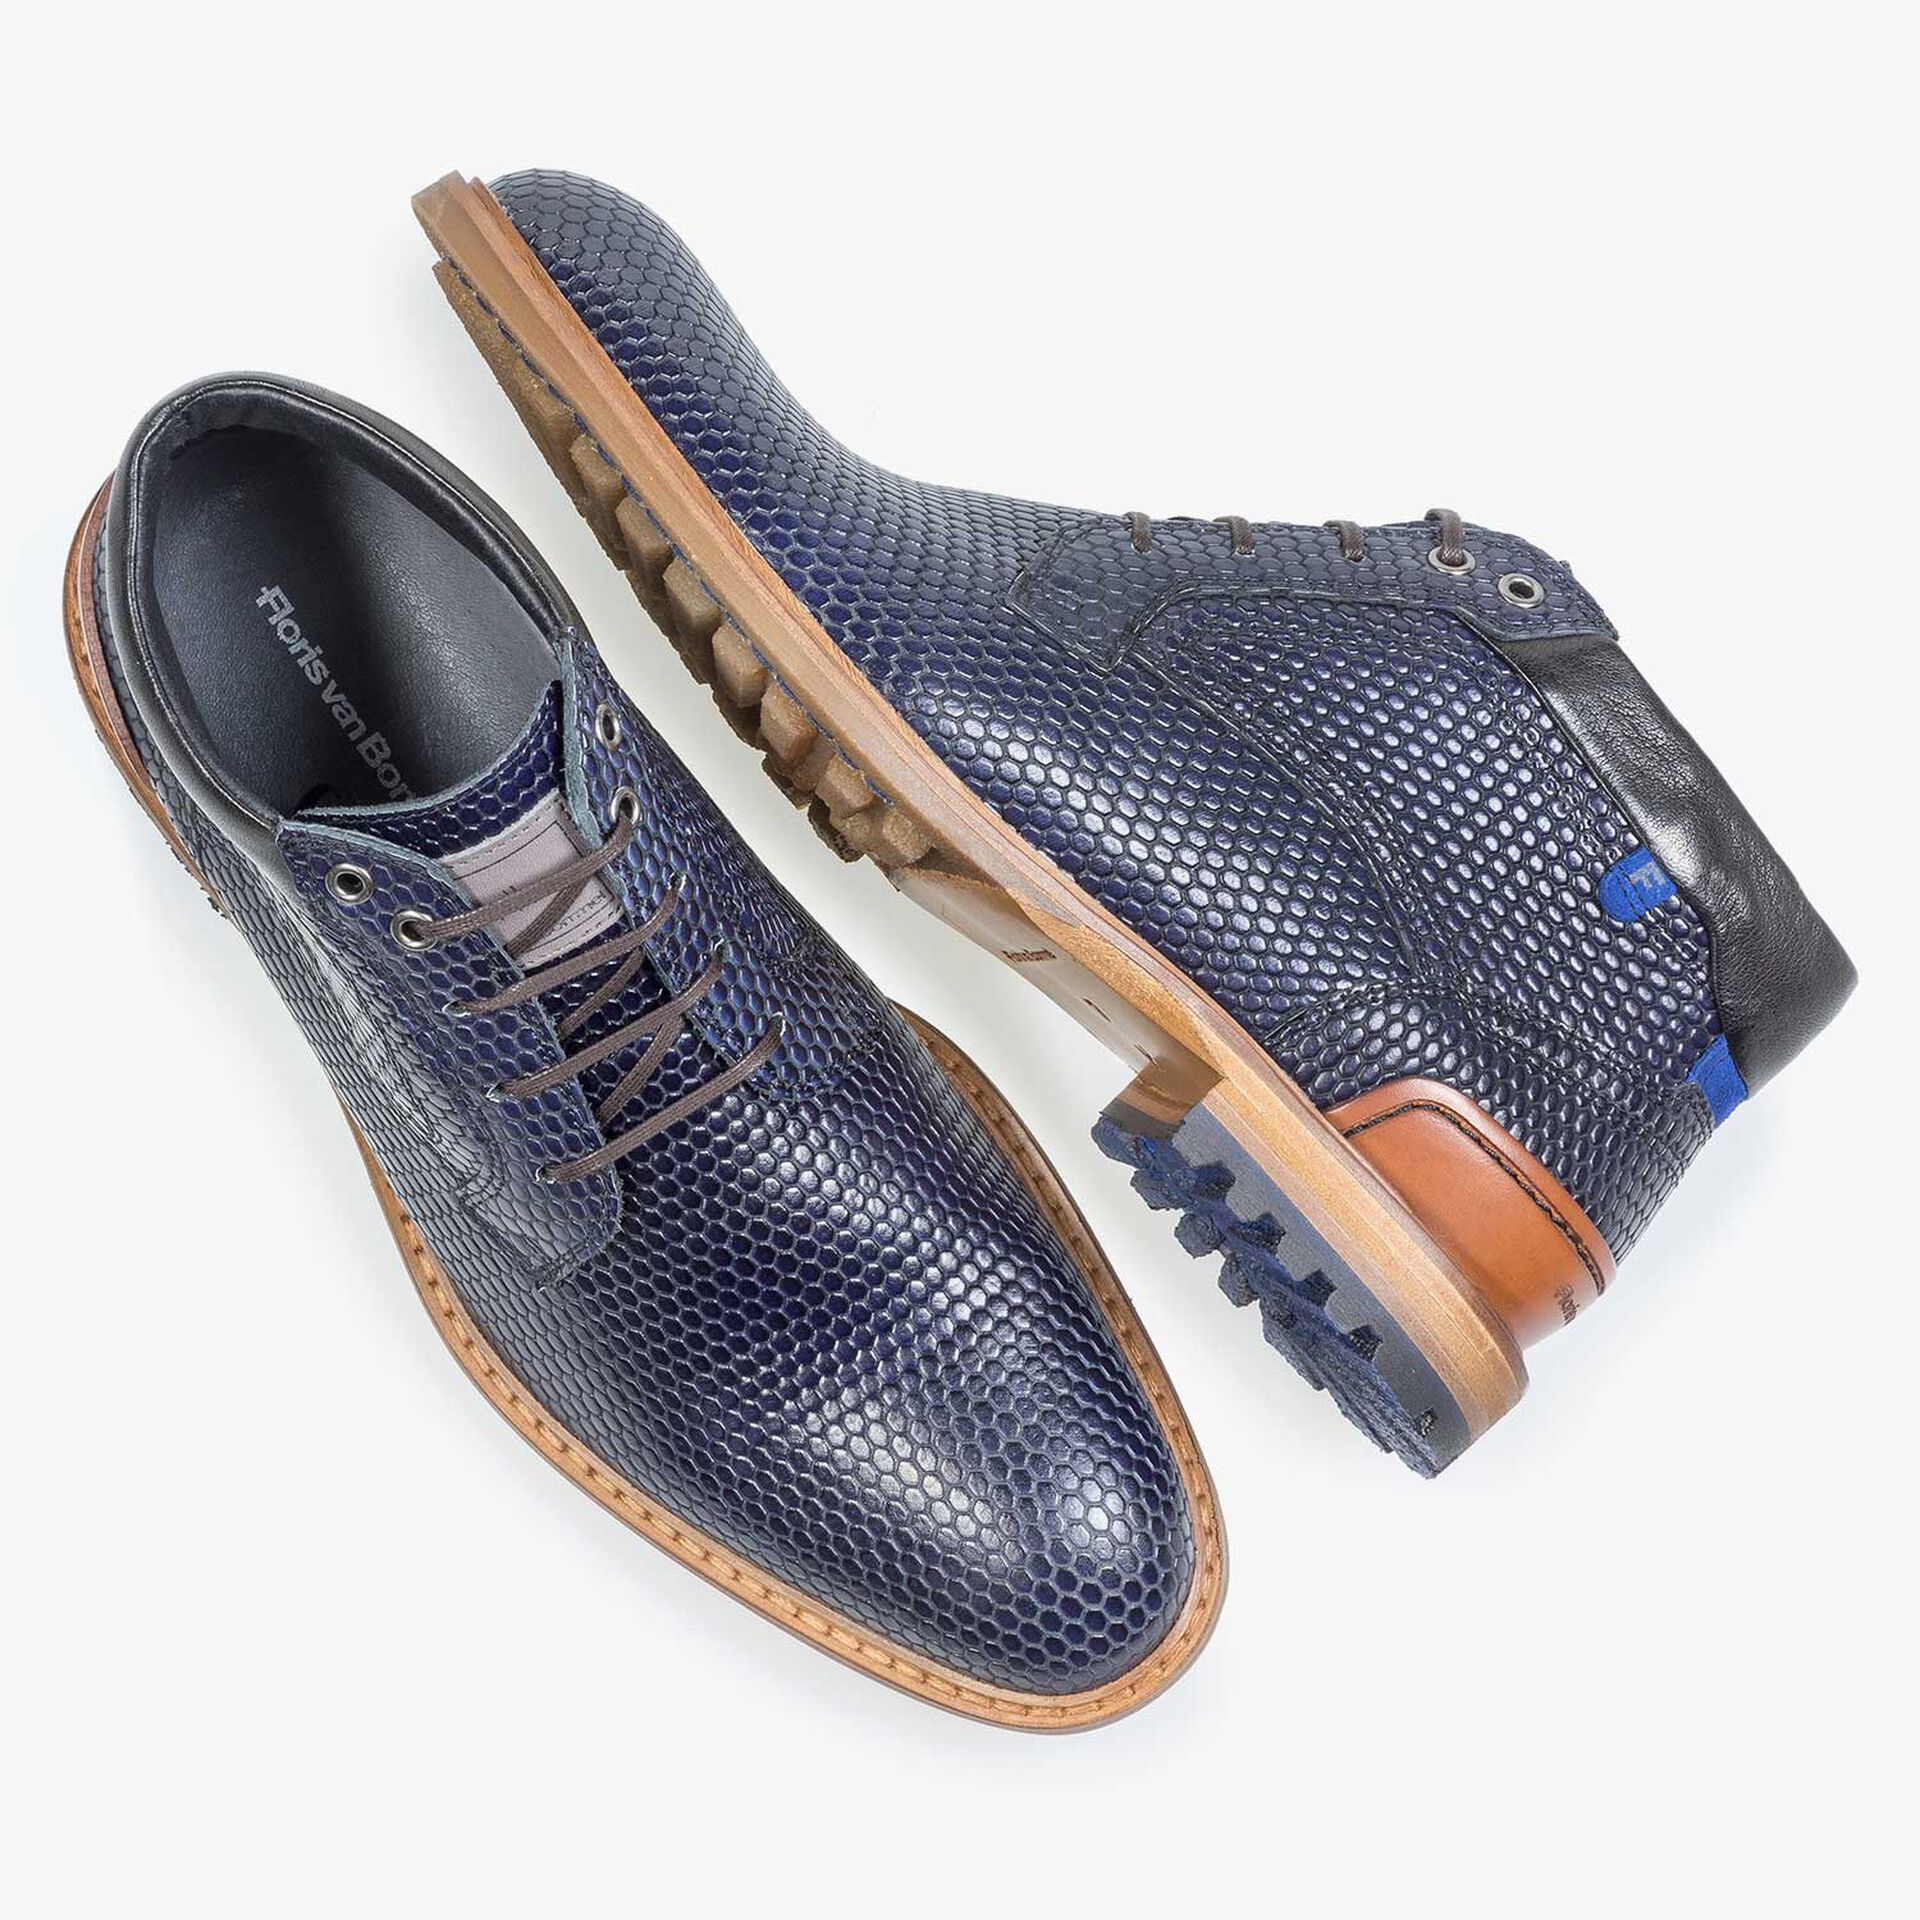 Dark blue leather lace boot with a structural print